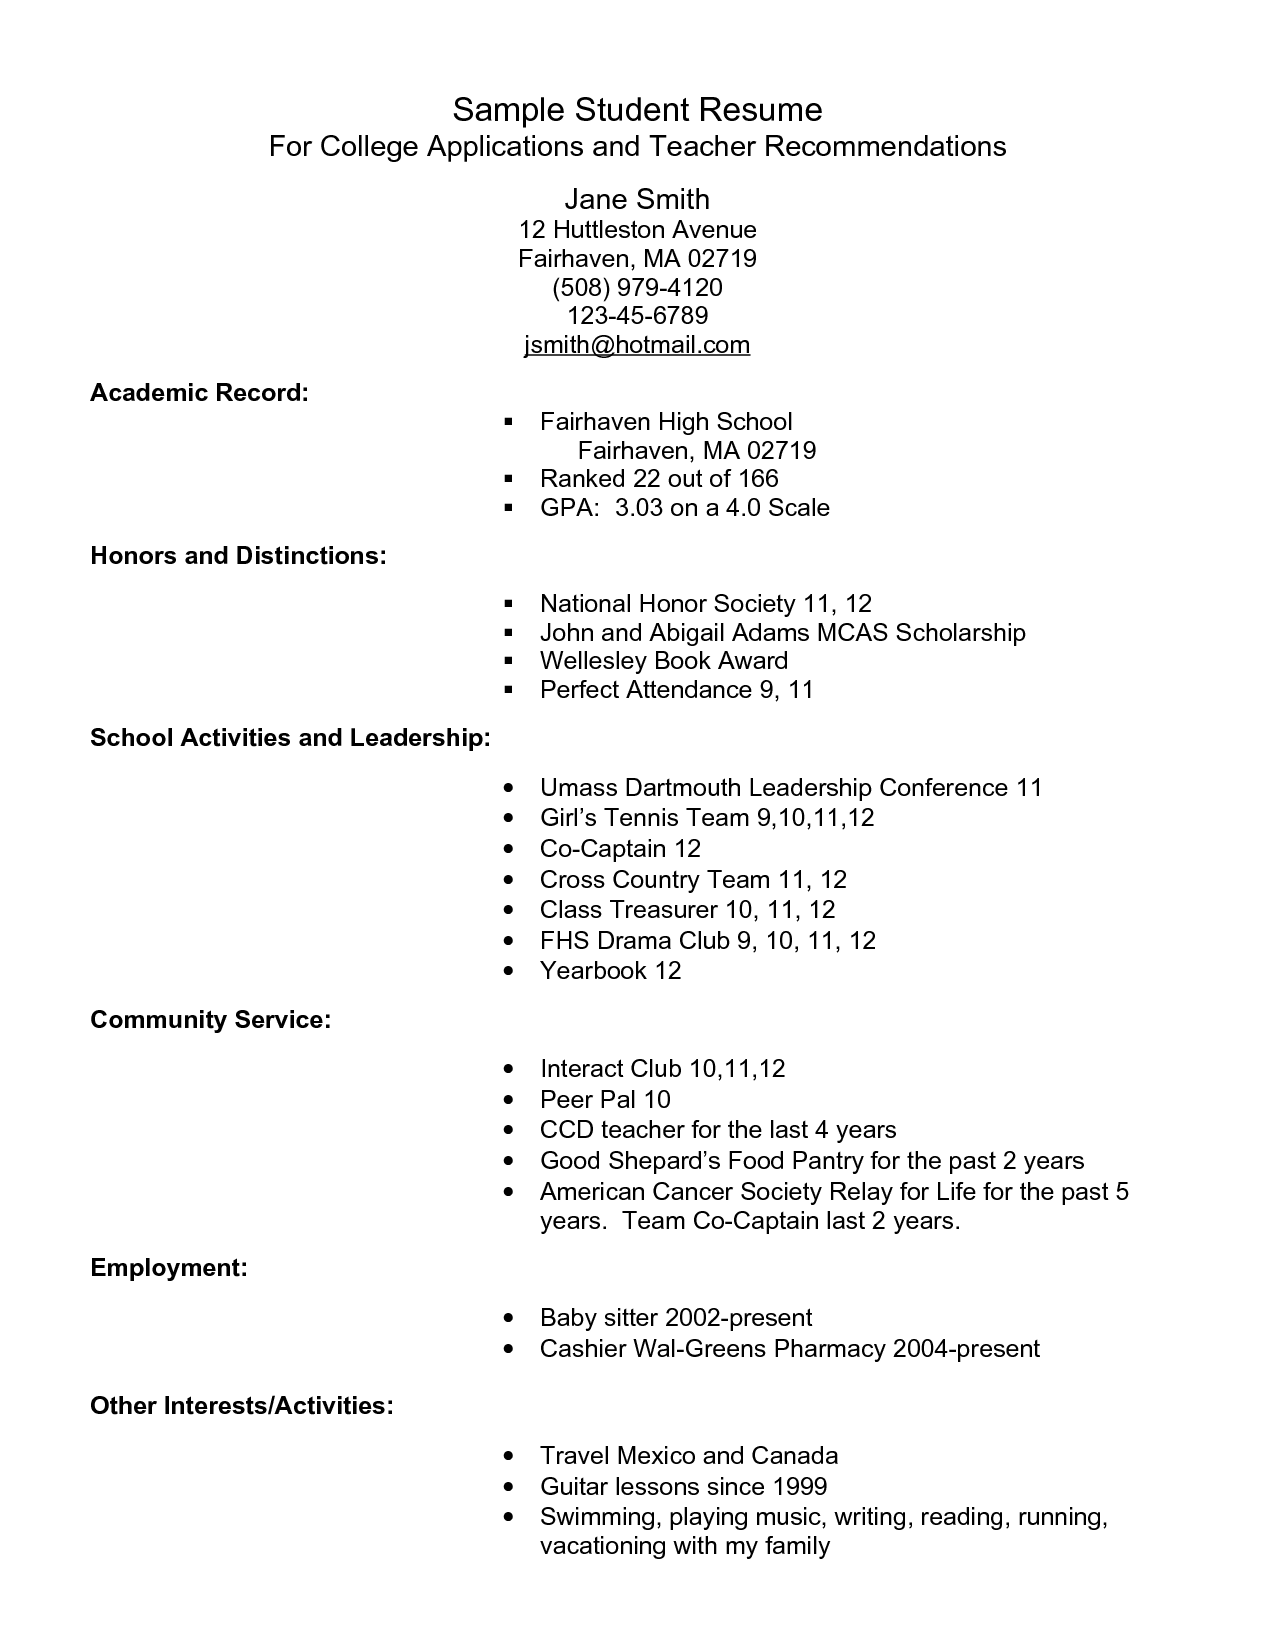 Current College Student Resume Examples Example Resume For High School Students For College Applications